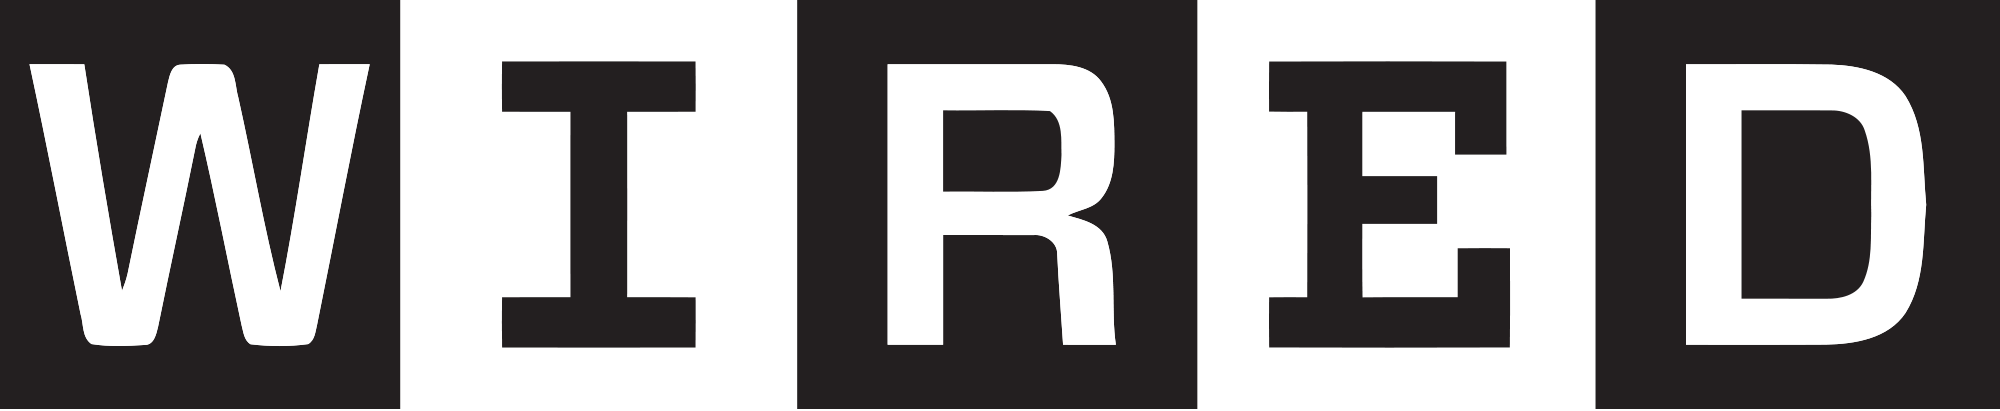 2000px wired logo